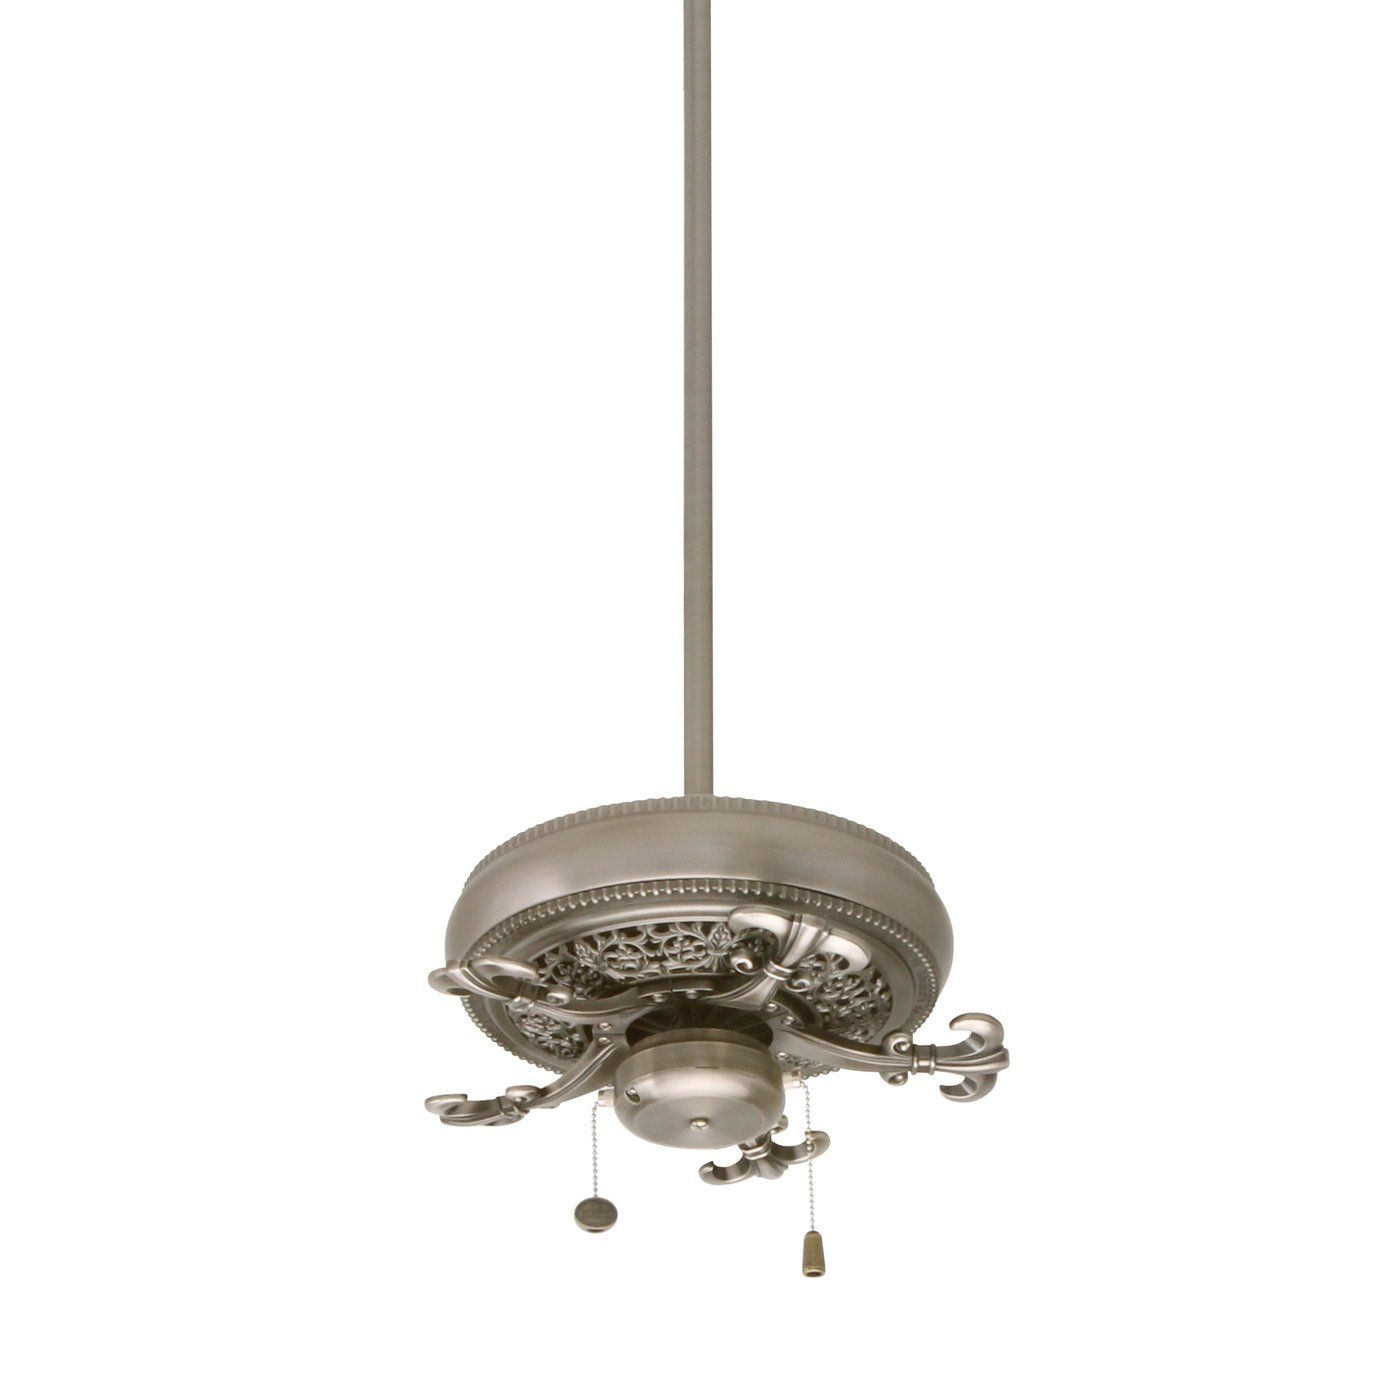 Emerson Electric pany CF4501 Crown Select Ceiling Fan